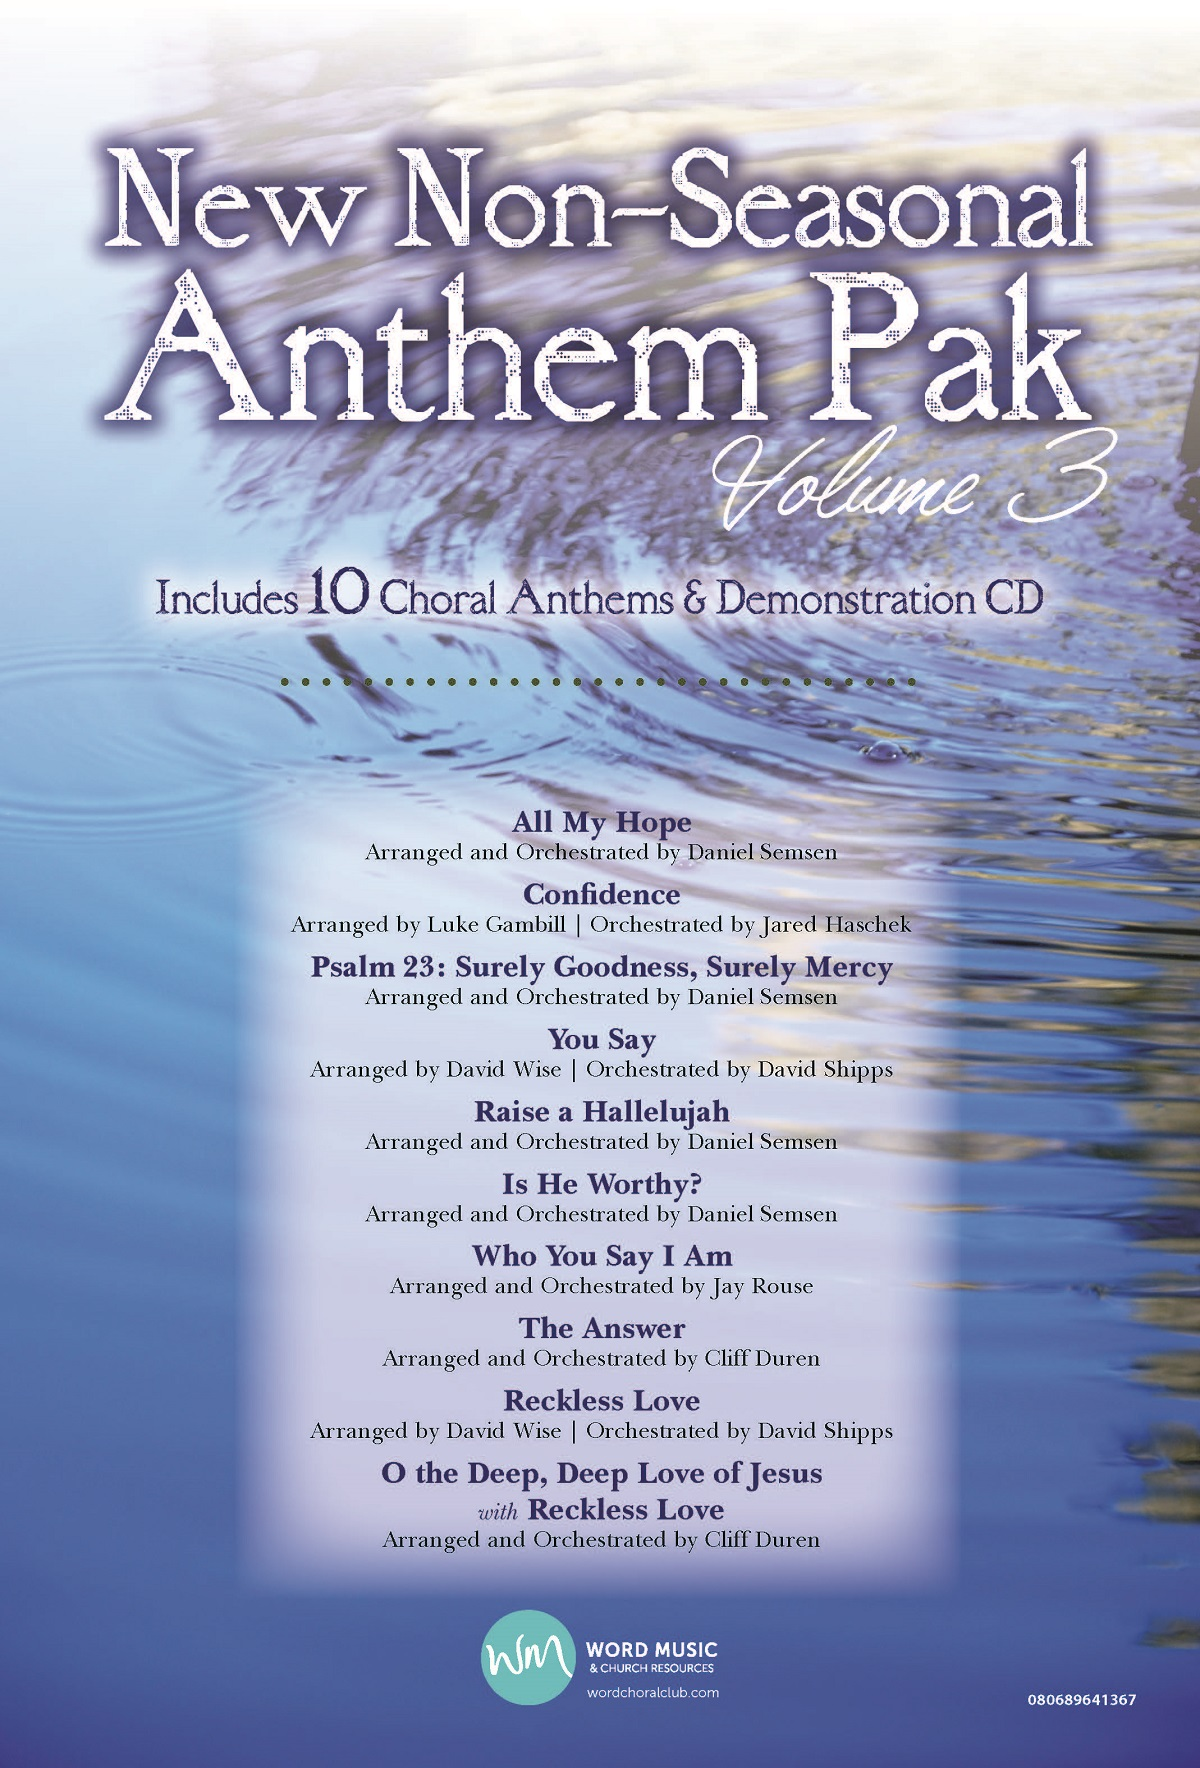 Anthem Preview Pak - New Non-Seasonal Volume 3